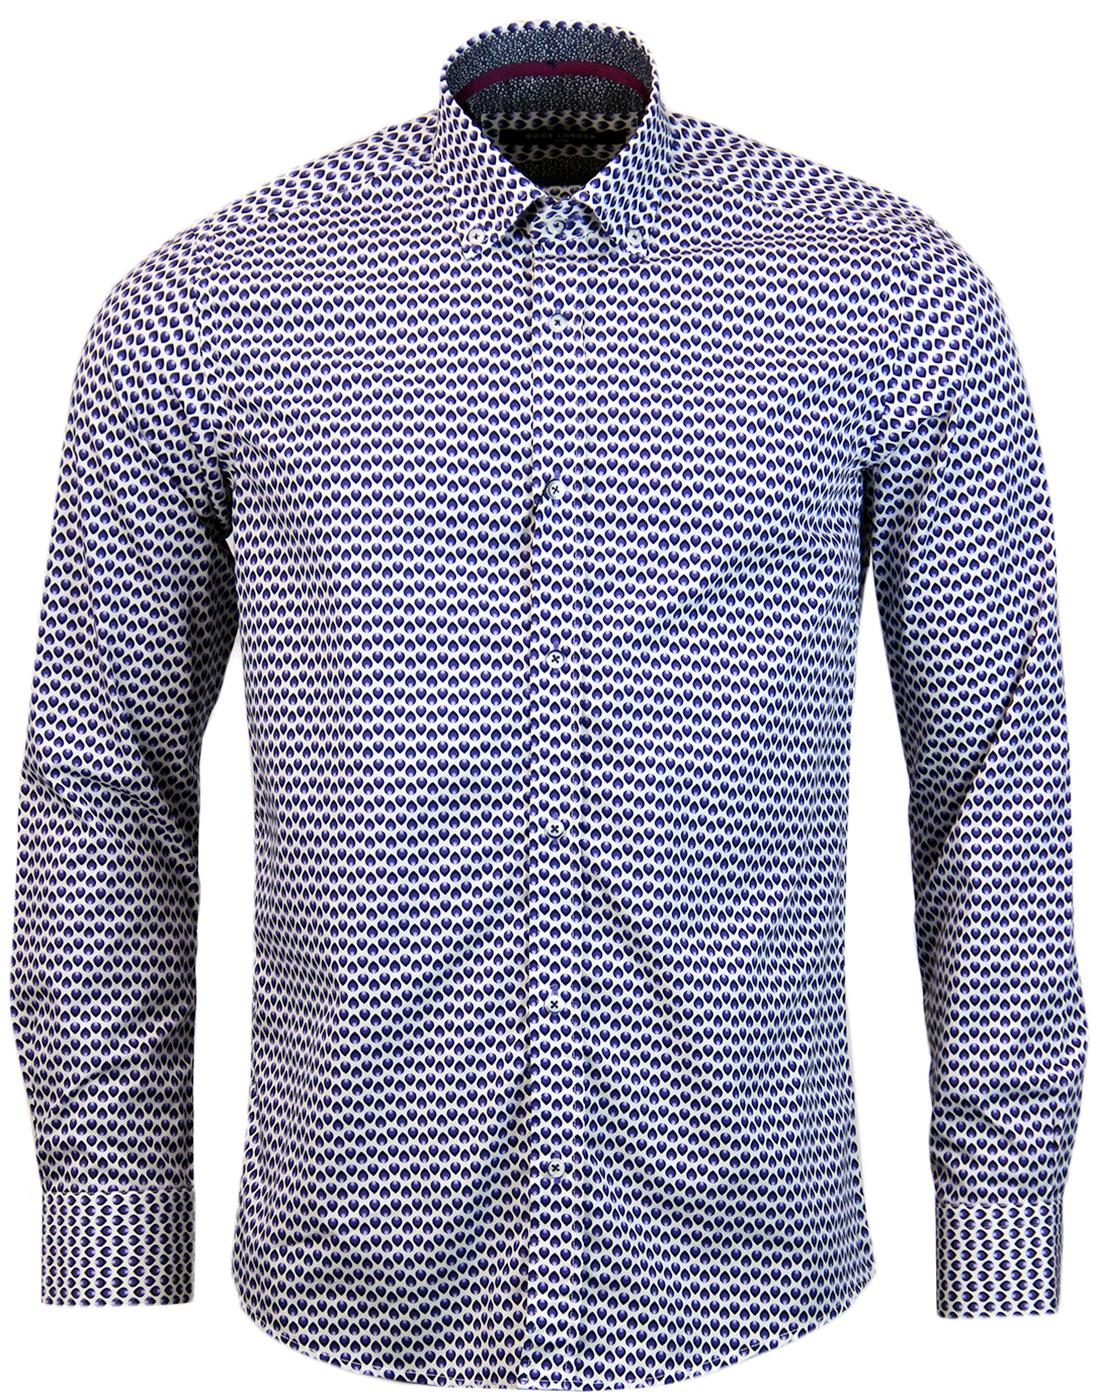 GUIDE LONDON Retro Op Art Tear Drop Print Shirt